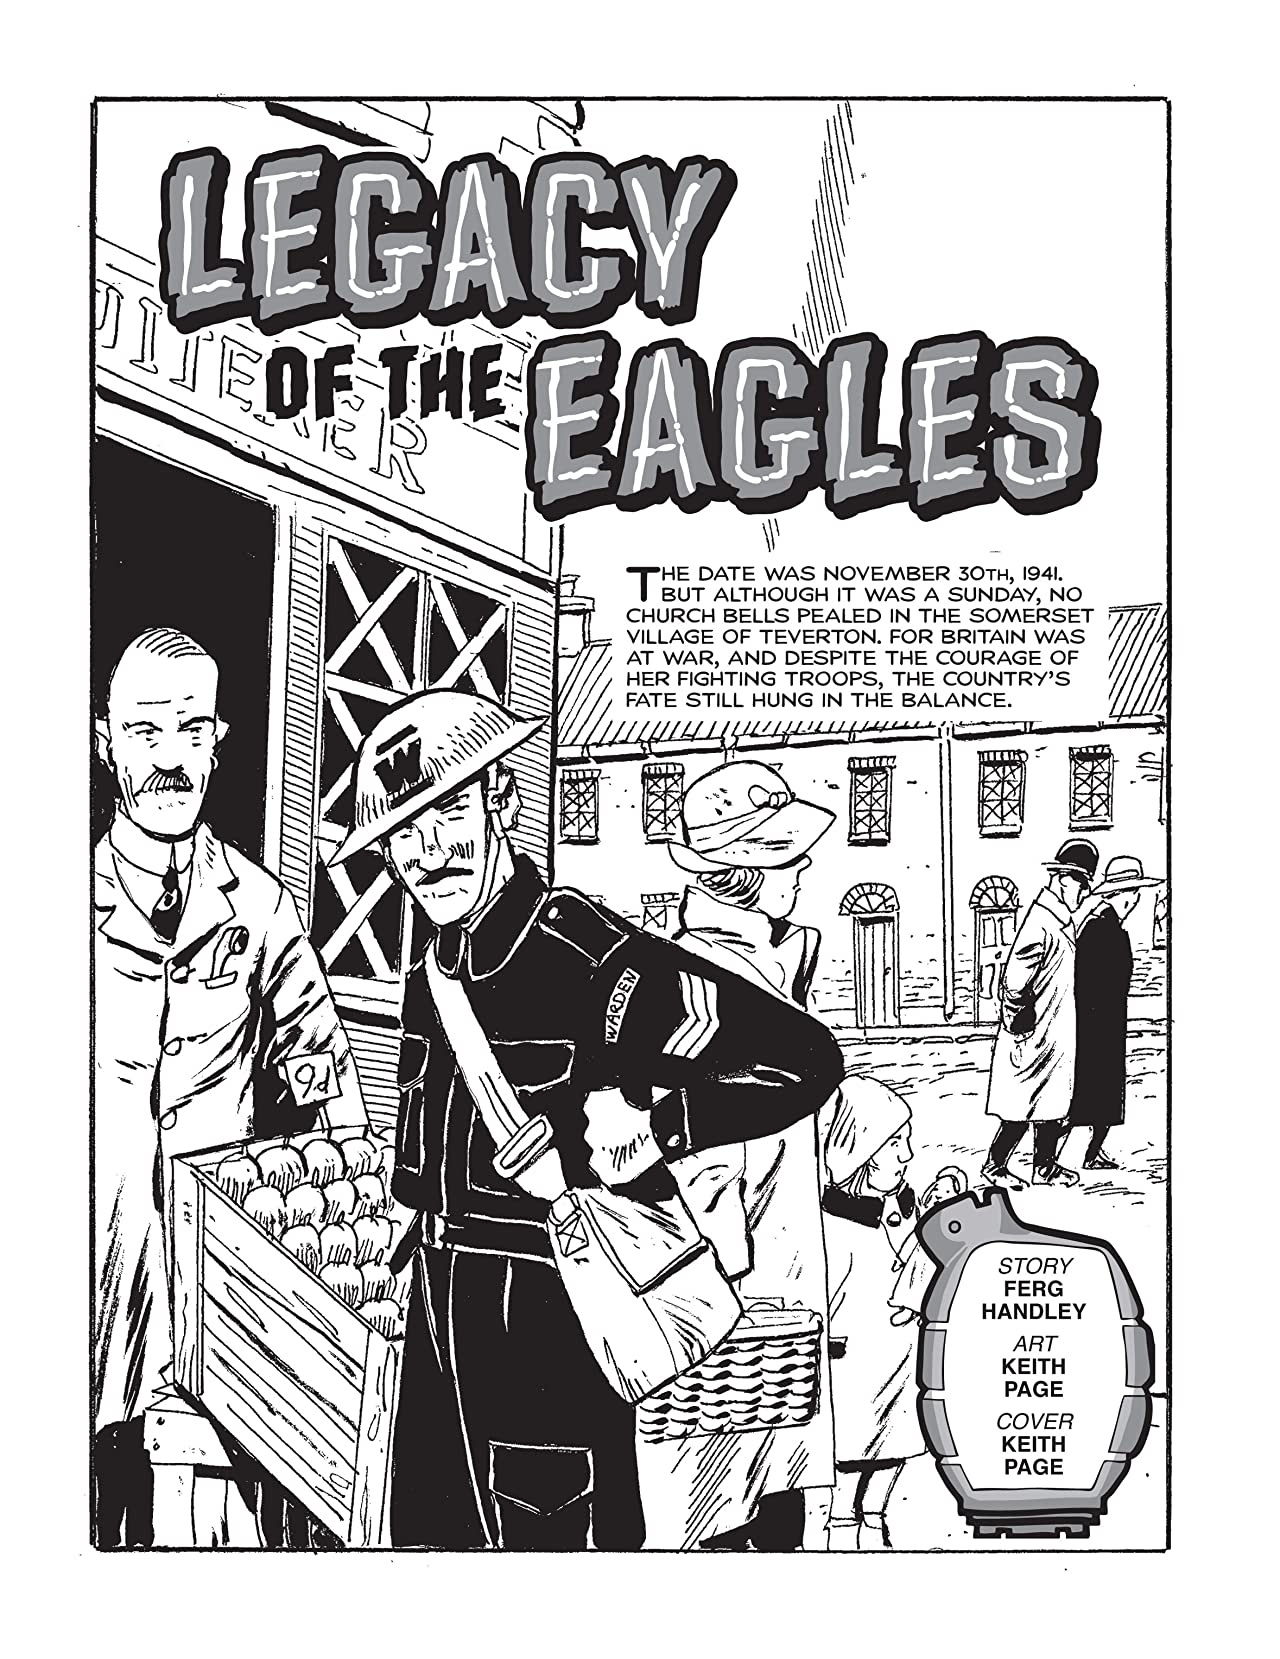 Commando #4863: Legacy Of The Eagles